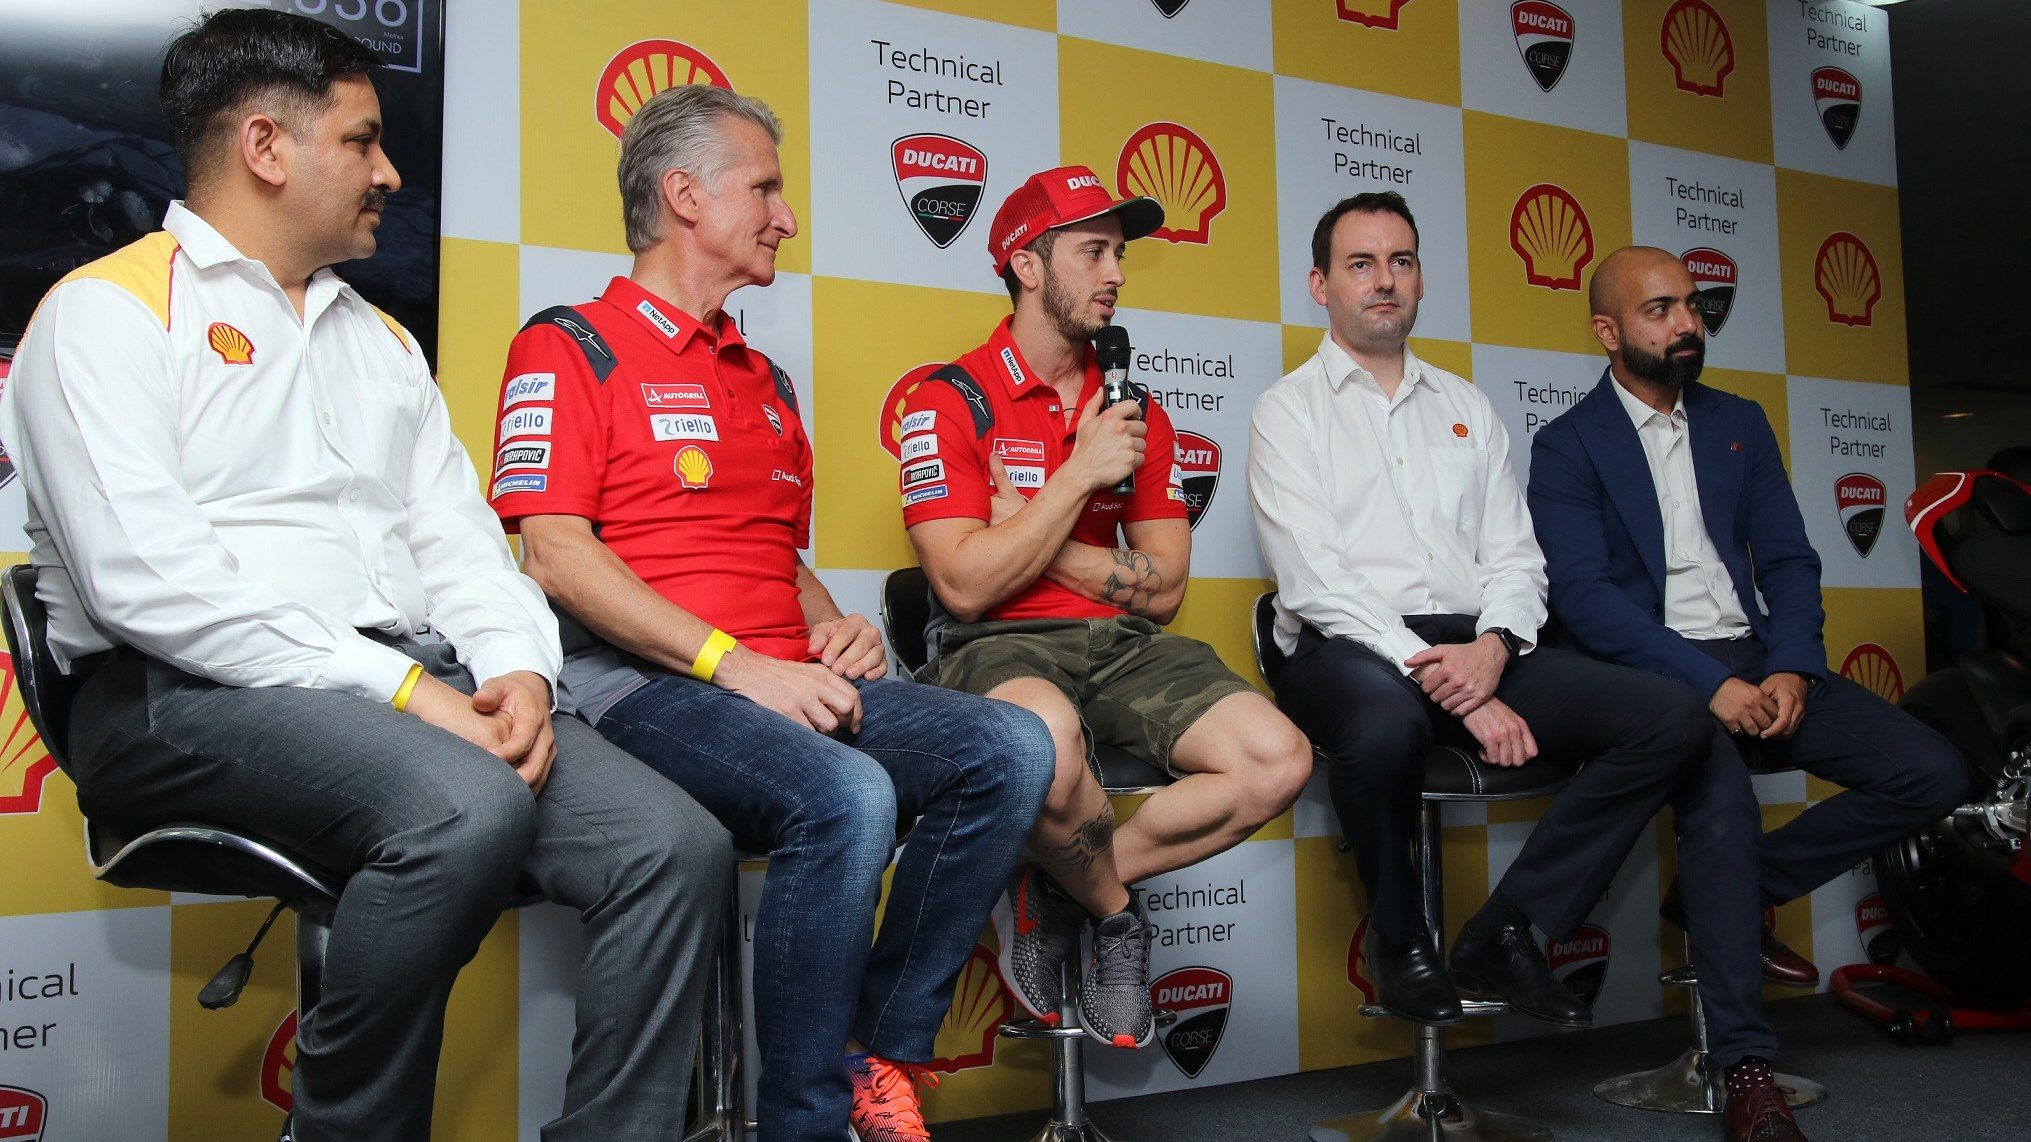 Ducati India Official Racing Team announced